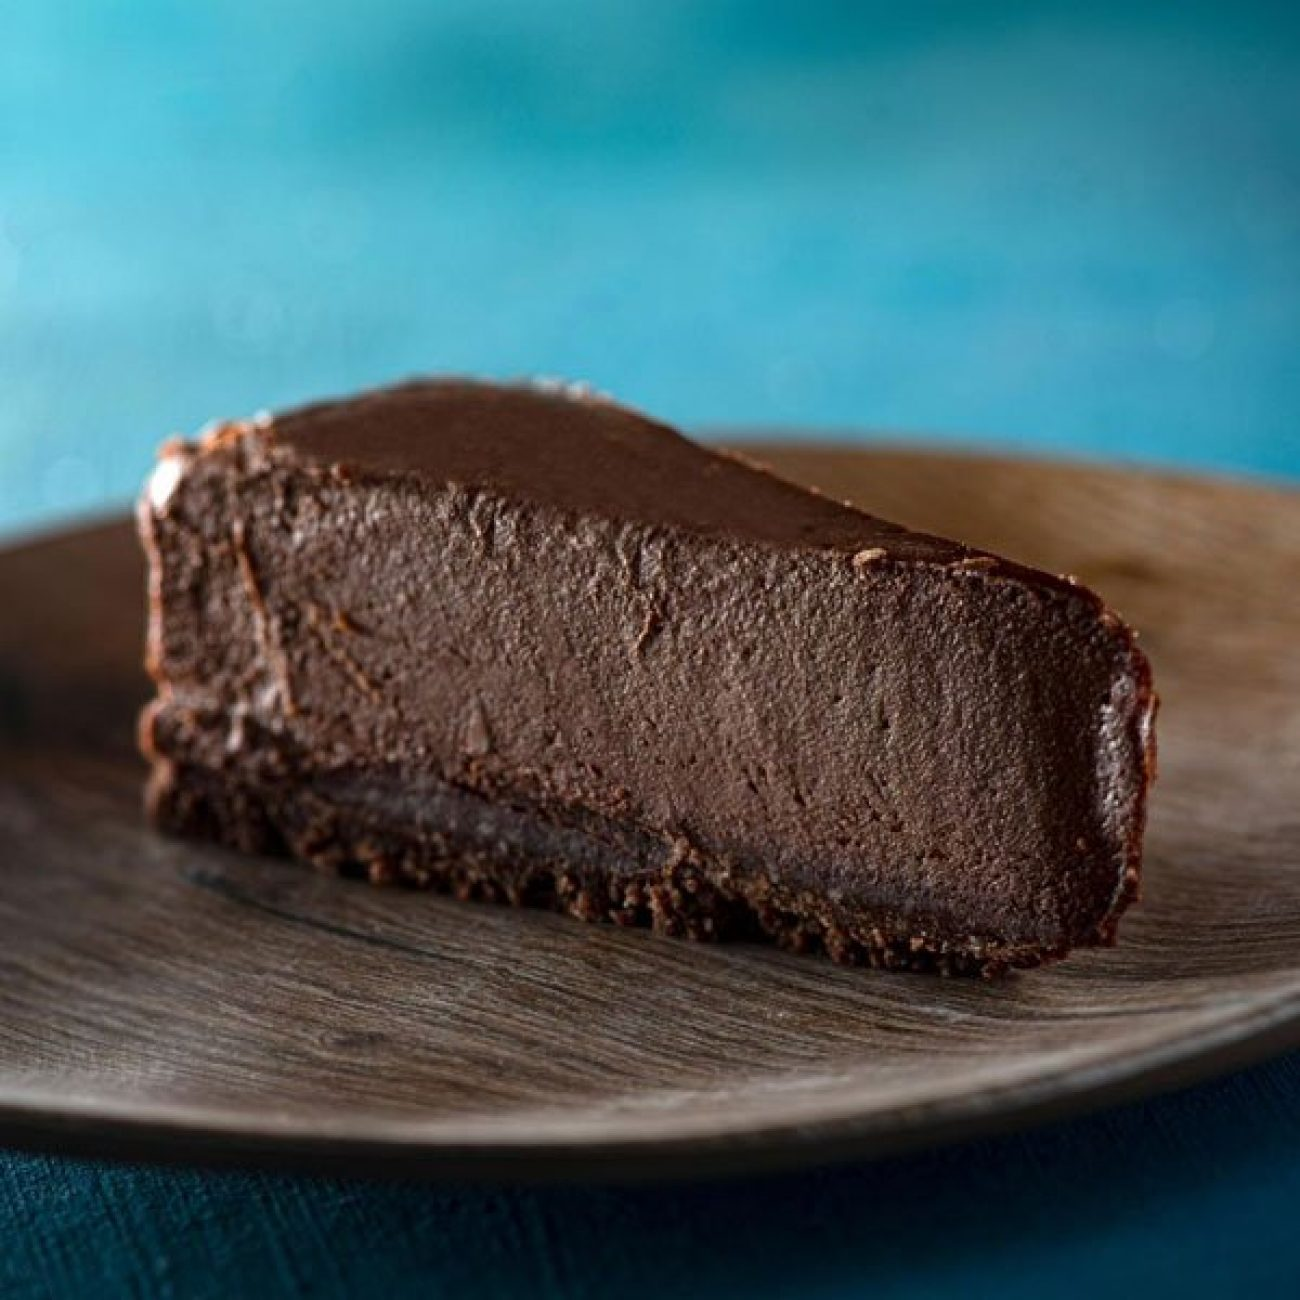 Slice of Chocolate Cheesecake